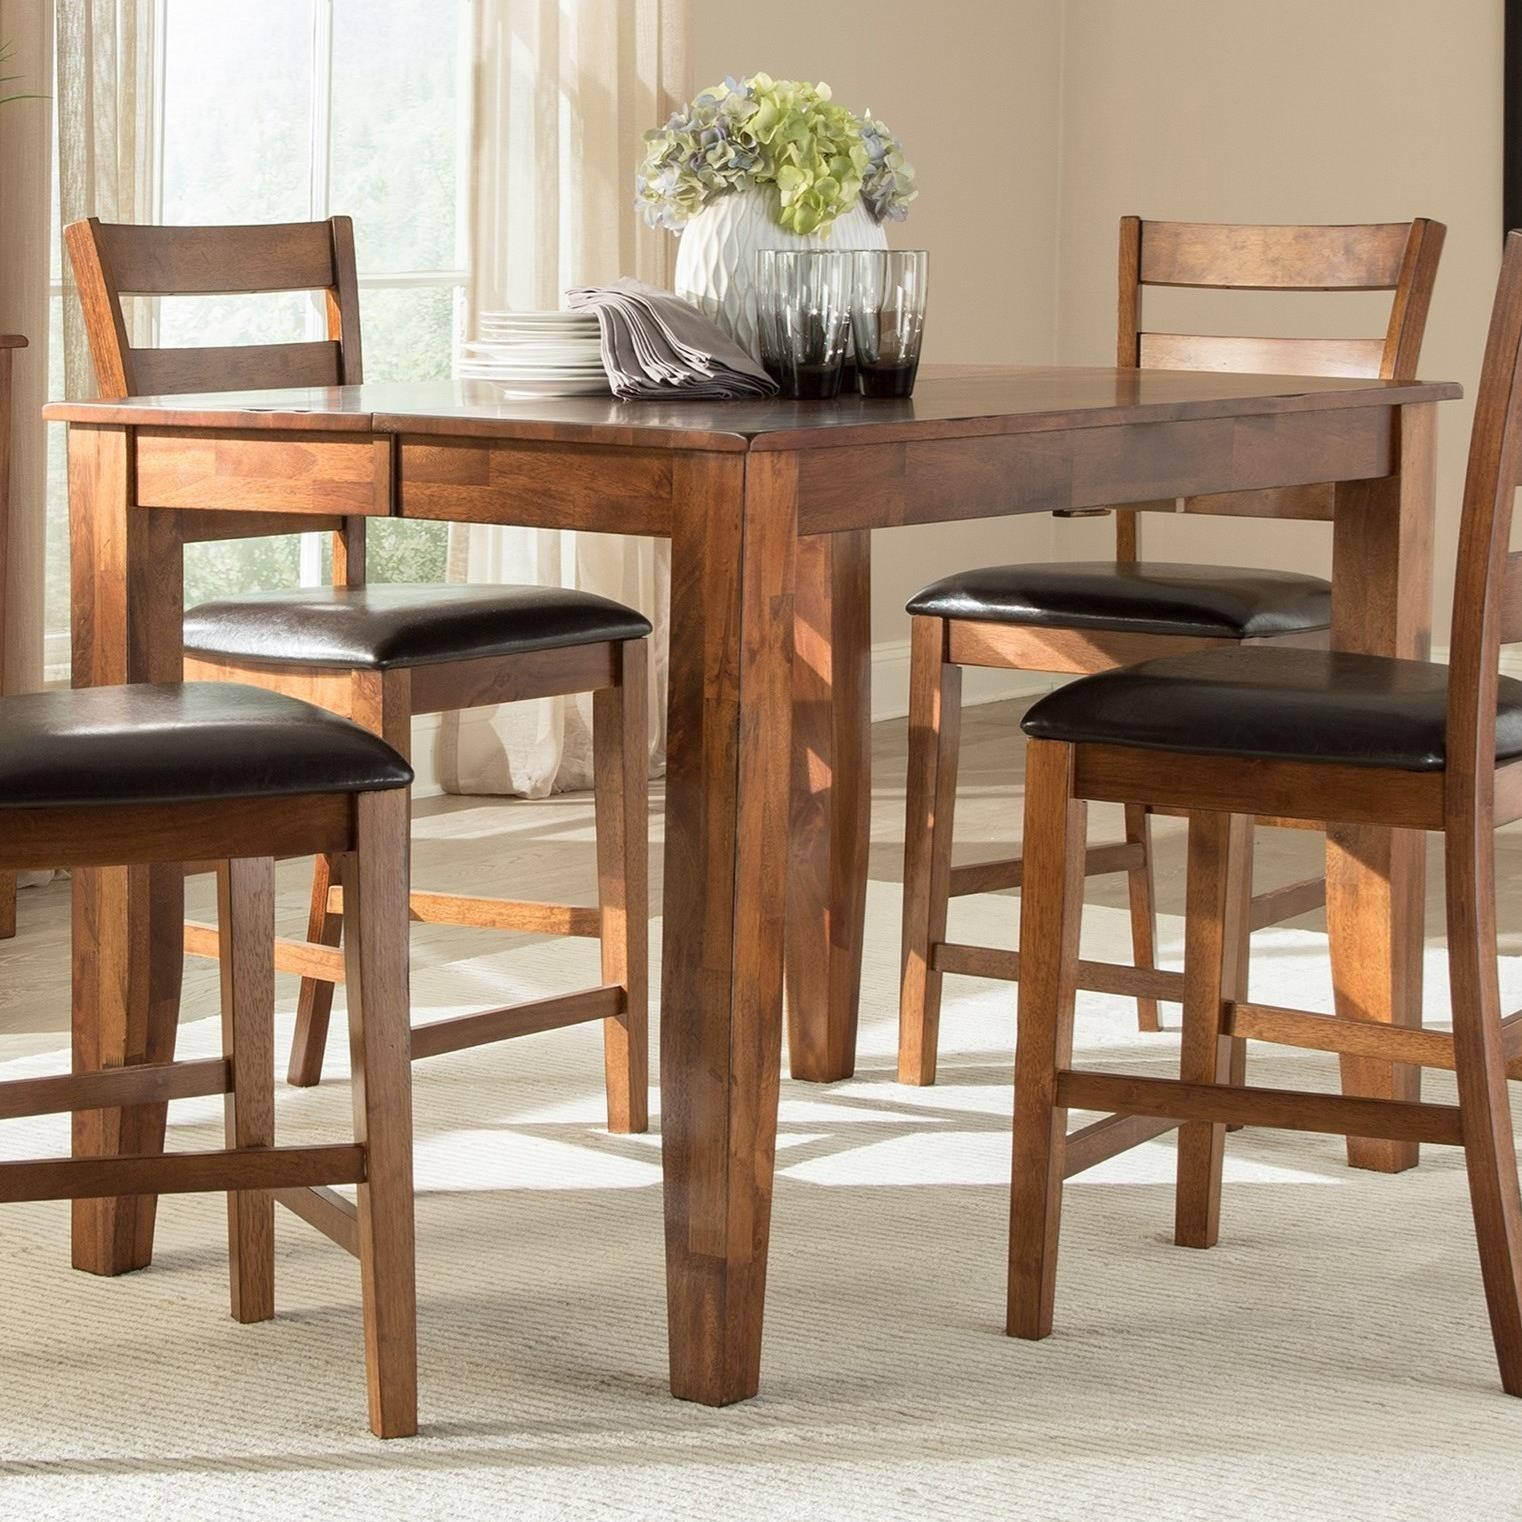 Peachy Intercon Kona Brandy Butterfly Gathering Table Gmtry Best Dining Table And Chair Ideas Images Gmtryco